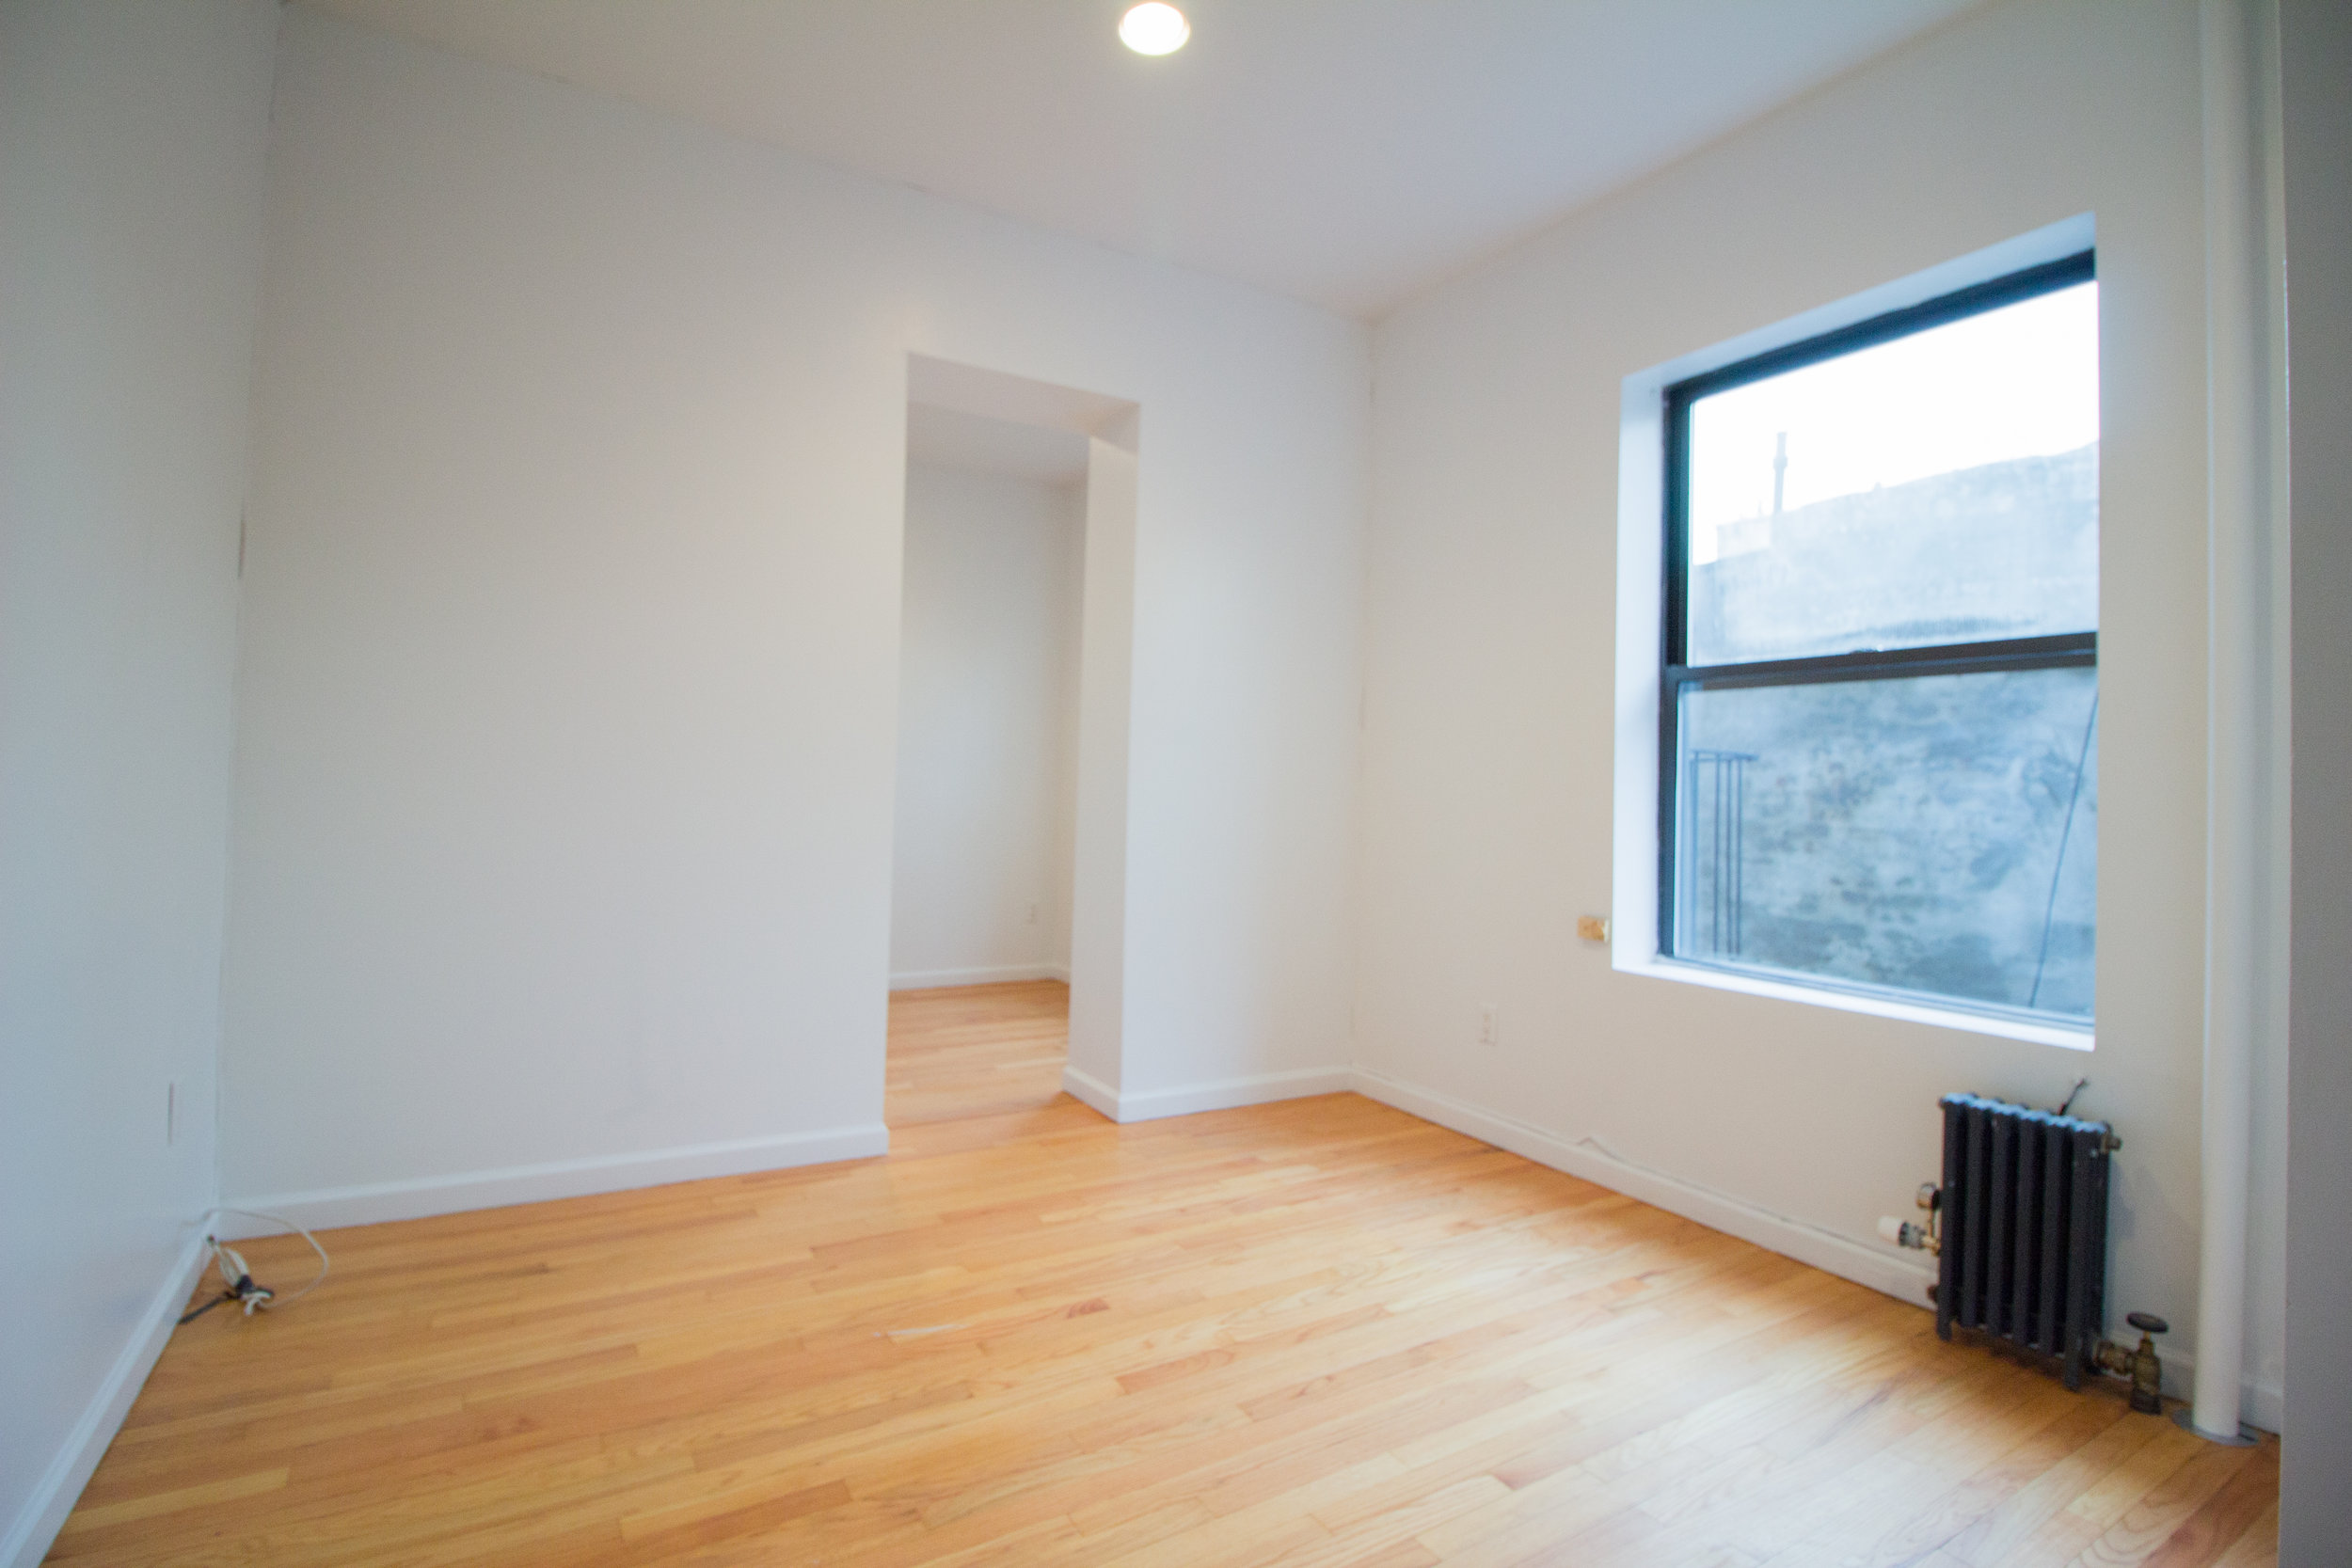 238-240 E 7 Street #13 - Renovated One Bedroom East Village!Sunny one bedroom home offers separate kitchen, windowed bathroom and spacious bedroom. Located in a walk up building in east village. Close to public transportation, cafes and shopping.Rent: $2,250 /monthTerms: 12 - 12 MonthsAvailable: Immediate